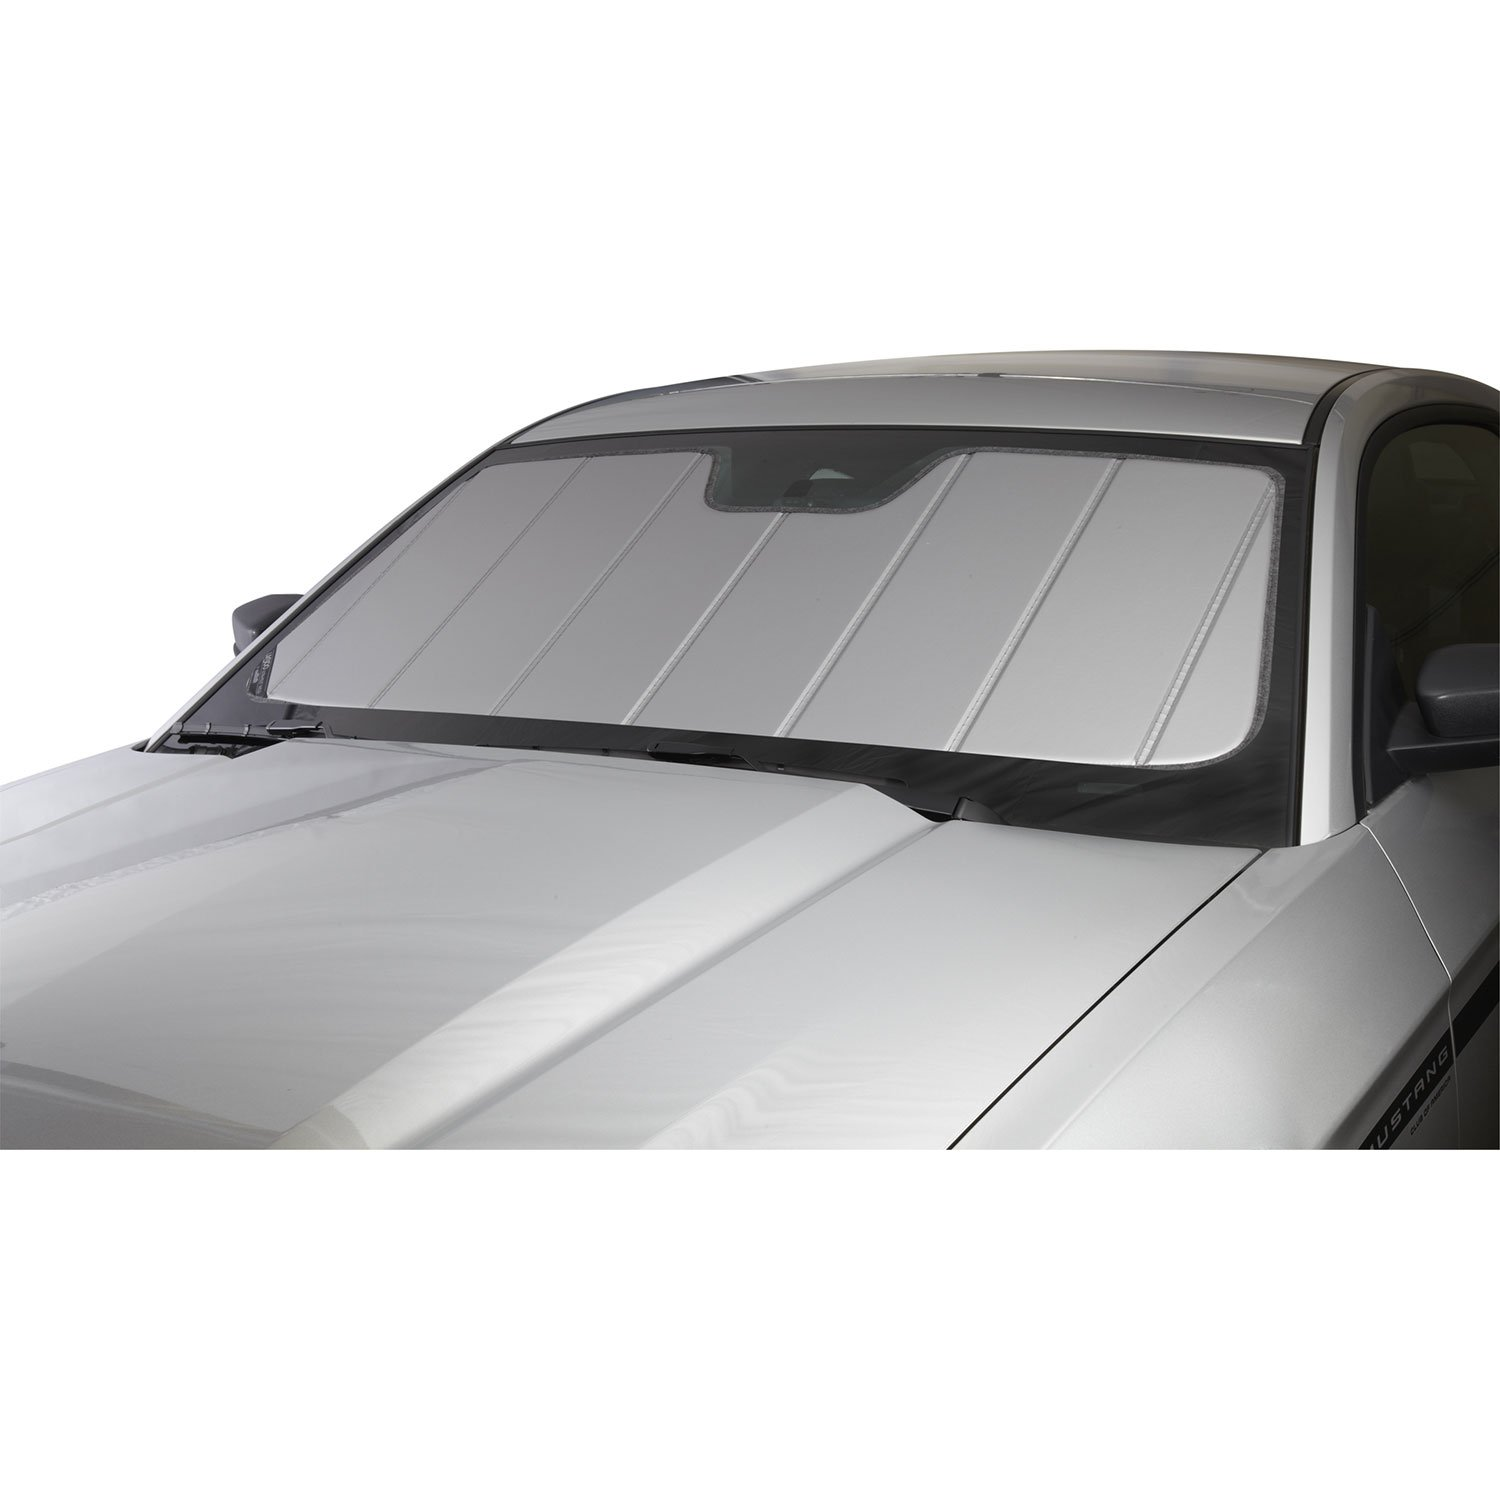 Covercraft UVS100 Windshield Custom Sunscreen: 2018-19 Fits Volkswagen TIGUAN (Silver) (UV11540SV)